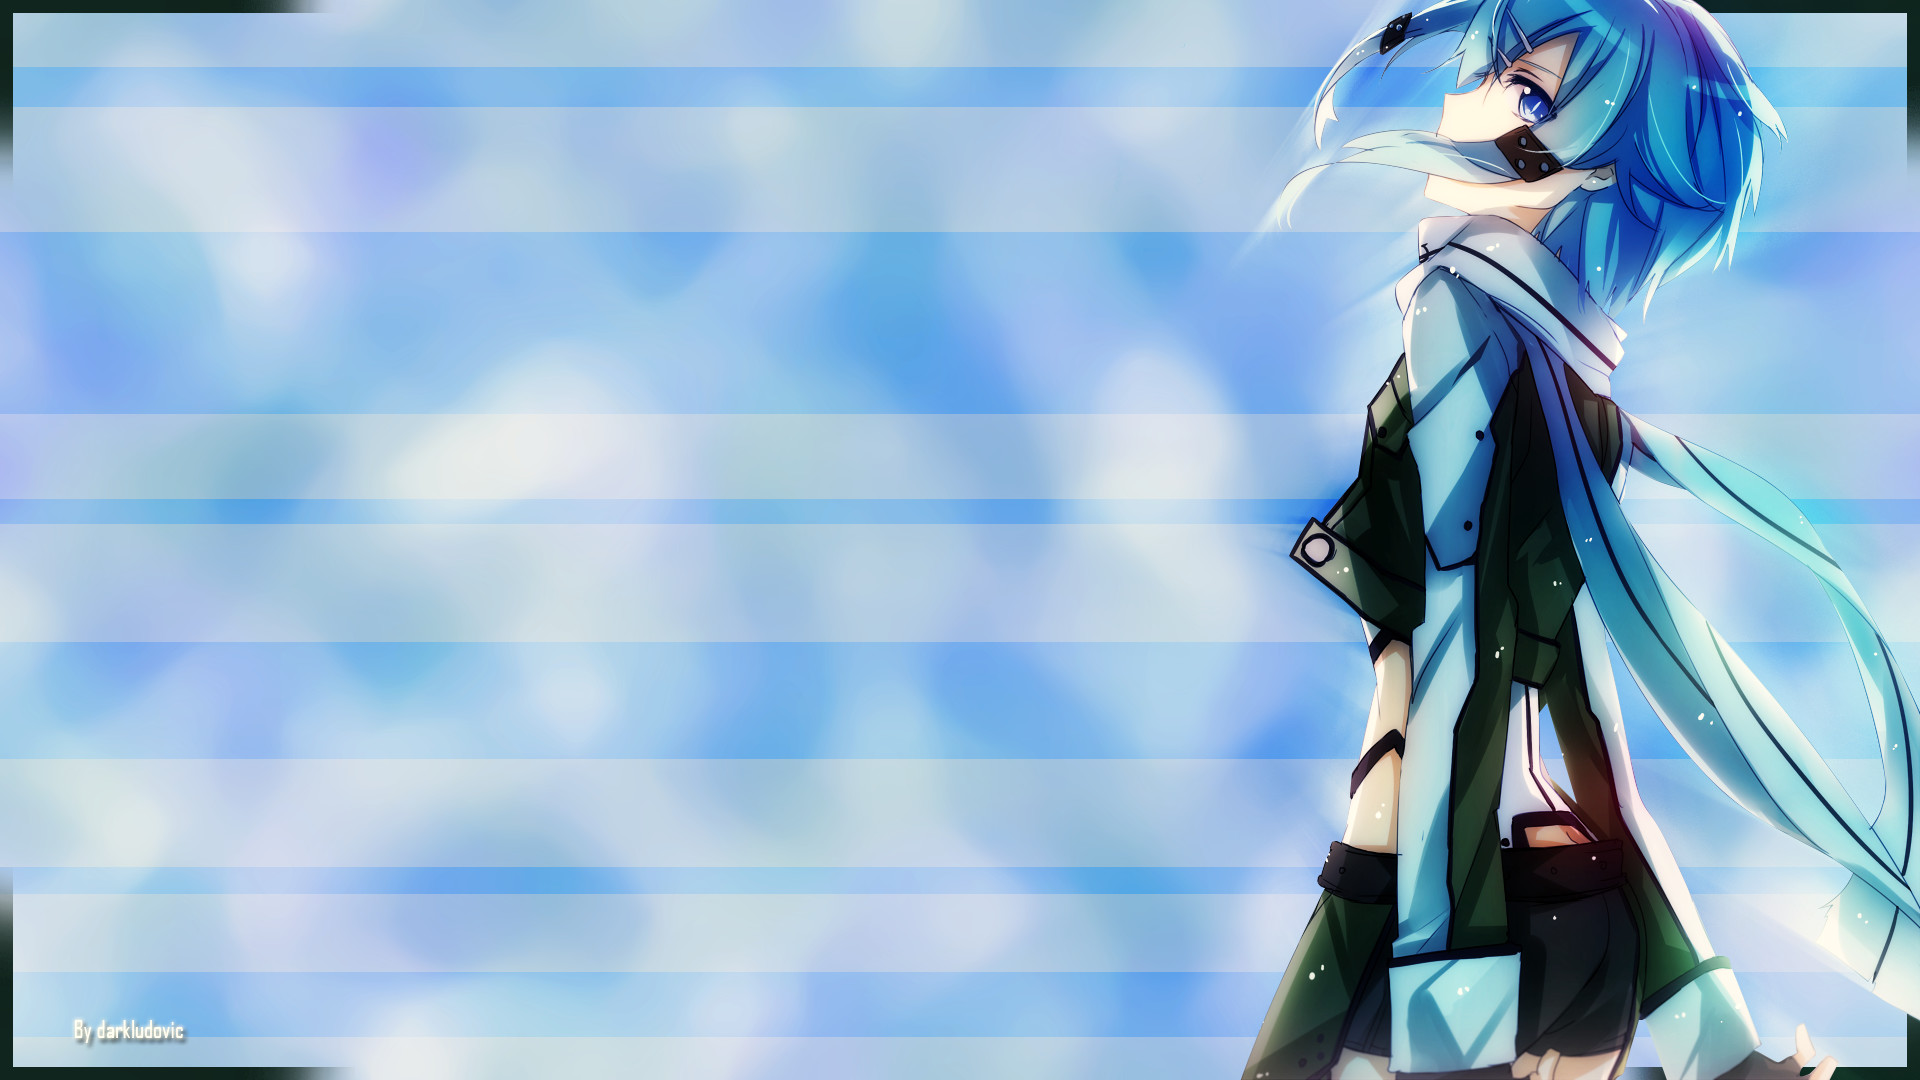 Sinon-Gun-Gale-Online-SAO-Background-Wallpapers.png